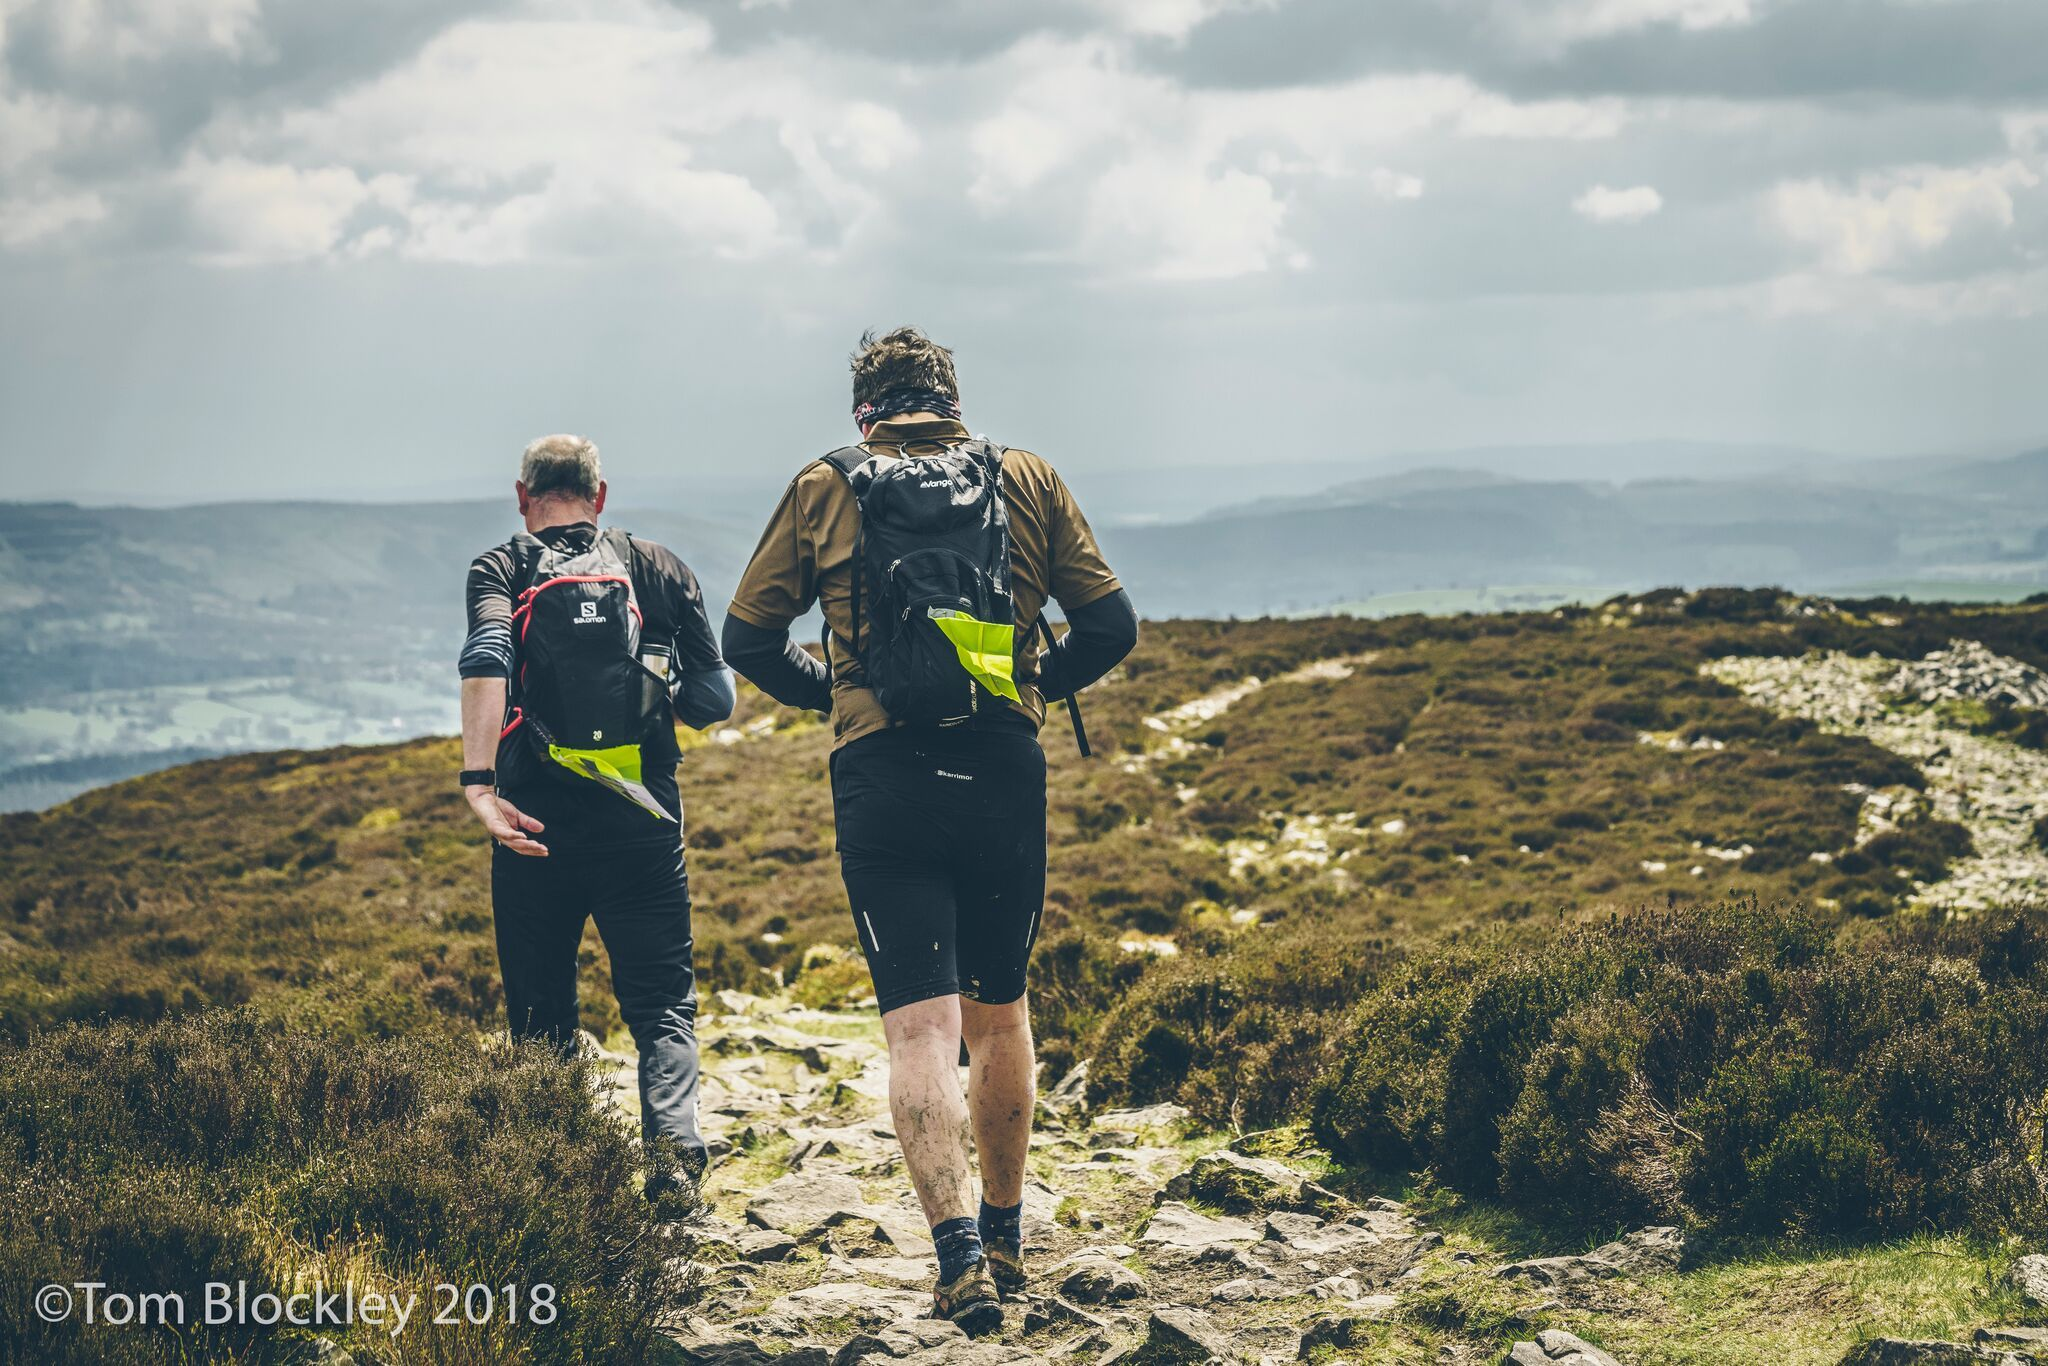 Over 100 participants were taken over the Stiperstones on the 50 mile route. Photo: Tom Blockley